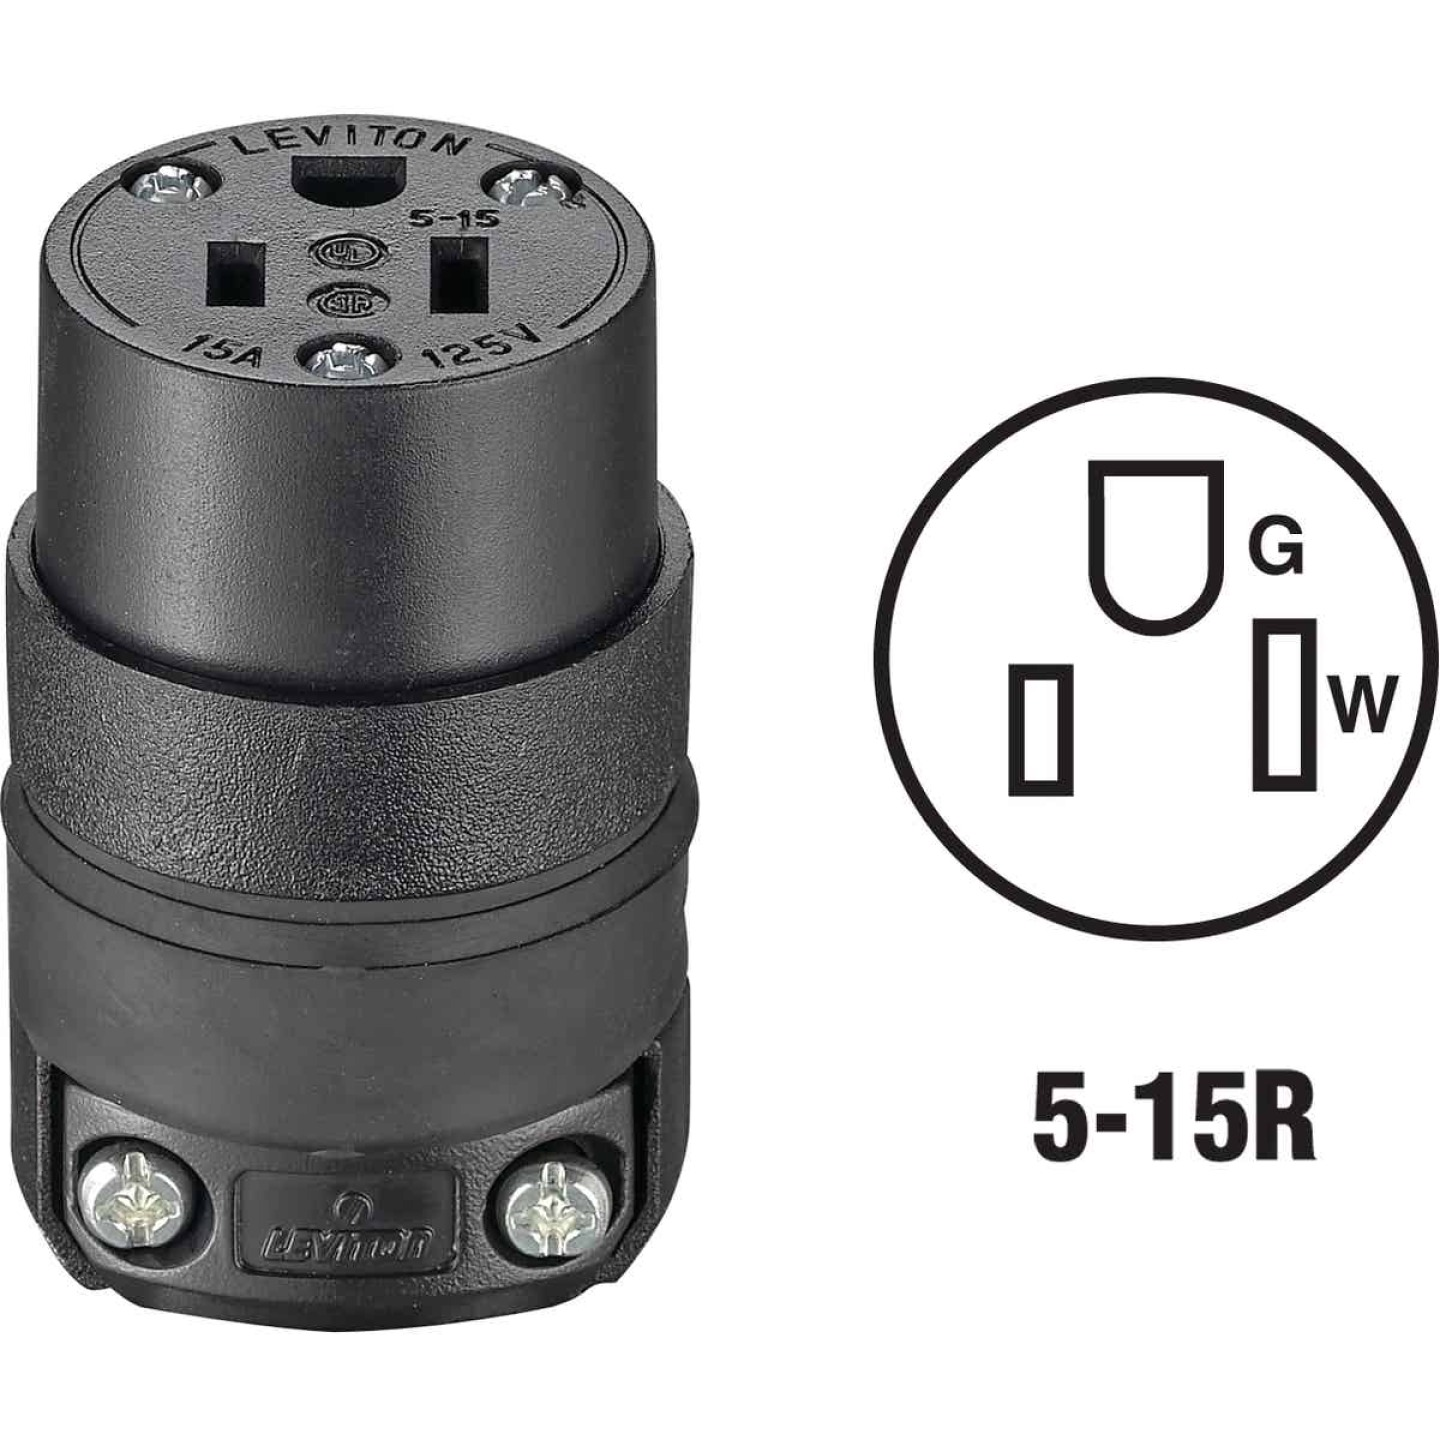 Do it 15A 125V 3-Wire 2-Pole Rough Use Cord Connector Image 1